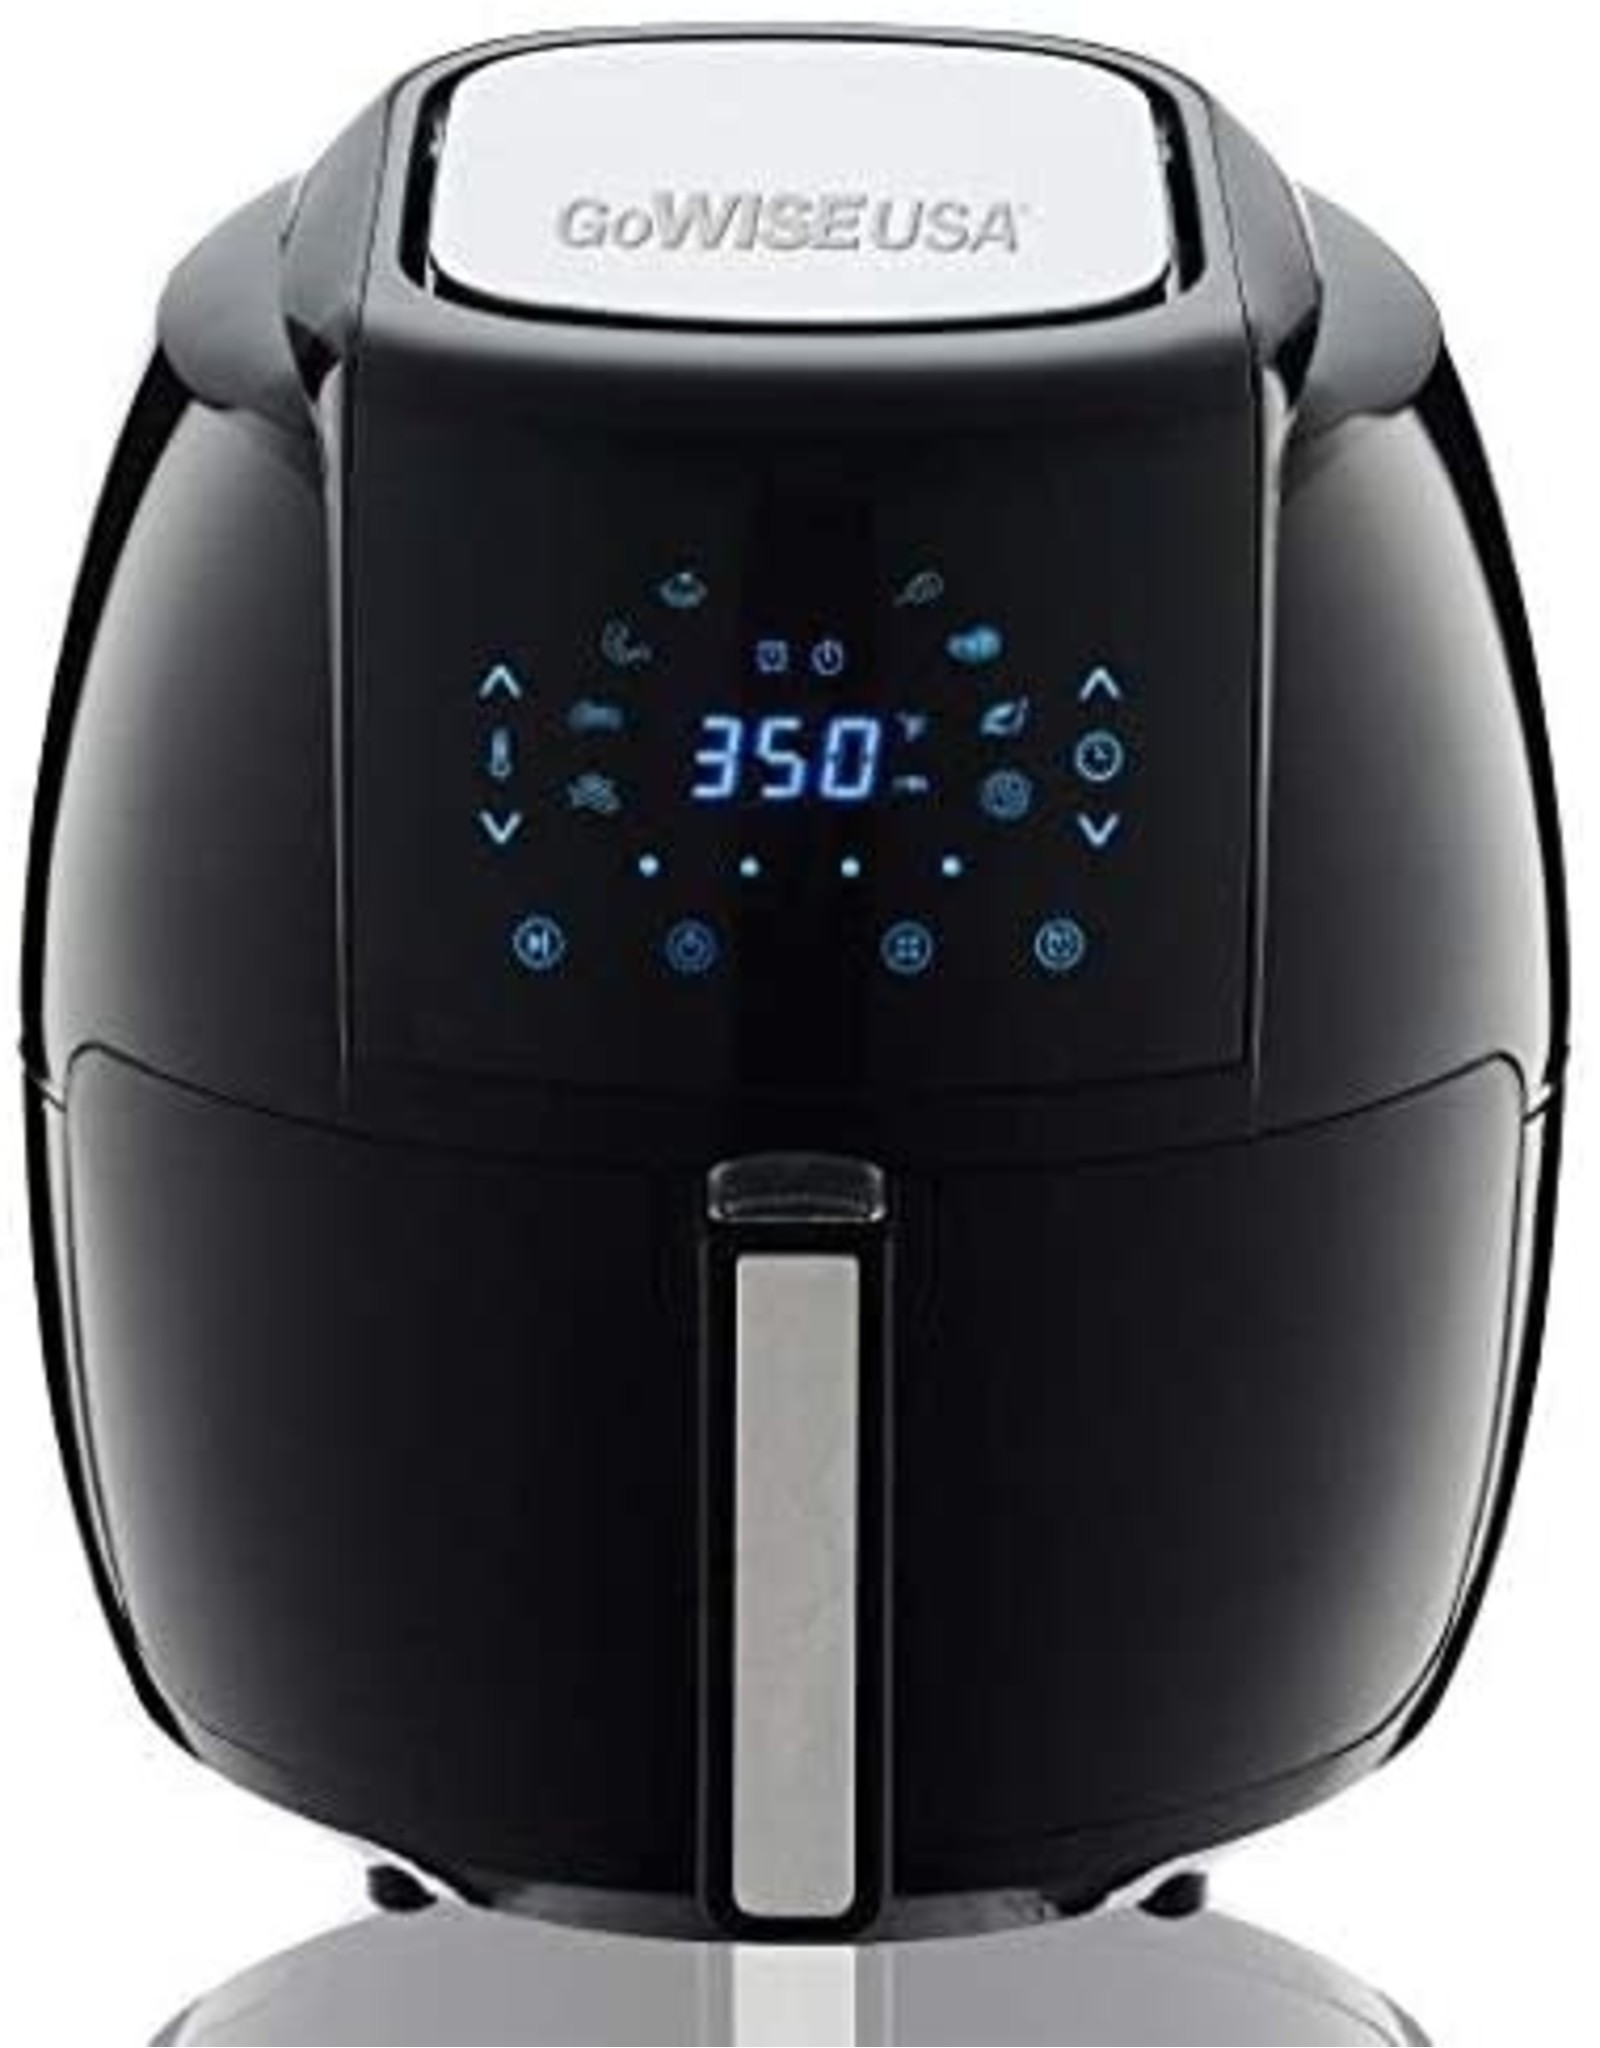 GoWISE USA GoWISE USA 1700-Watt 5.8-QT 8-in-1 Digital Air Fryer with Recipe Book, Black